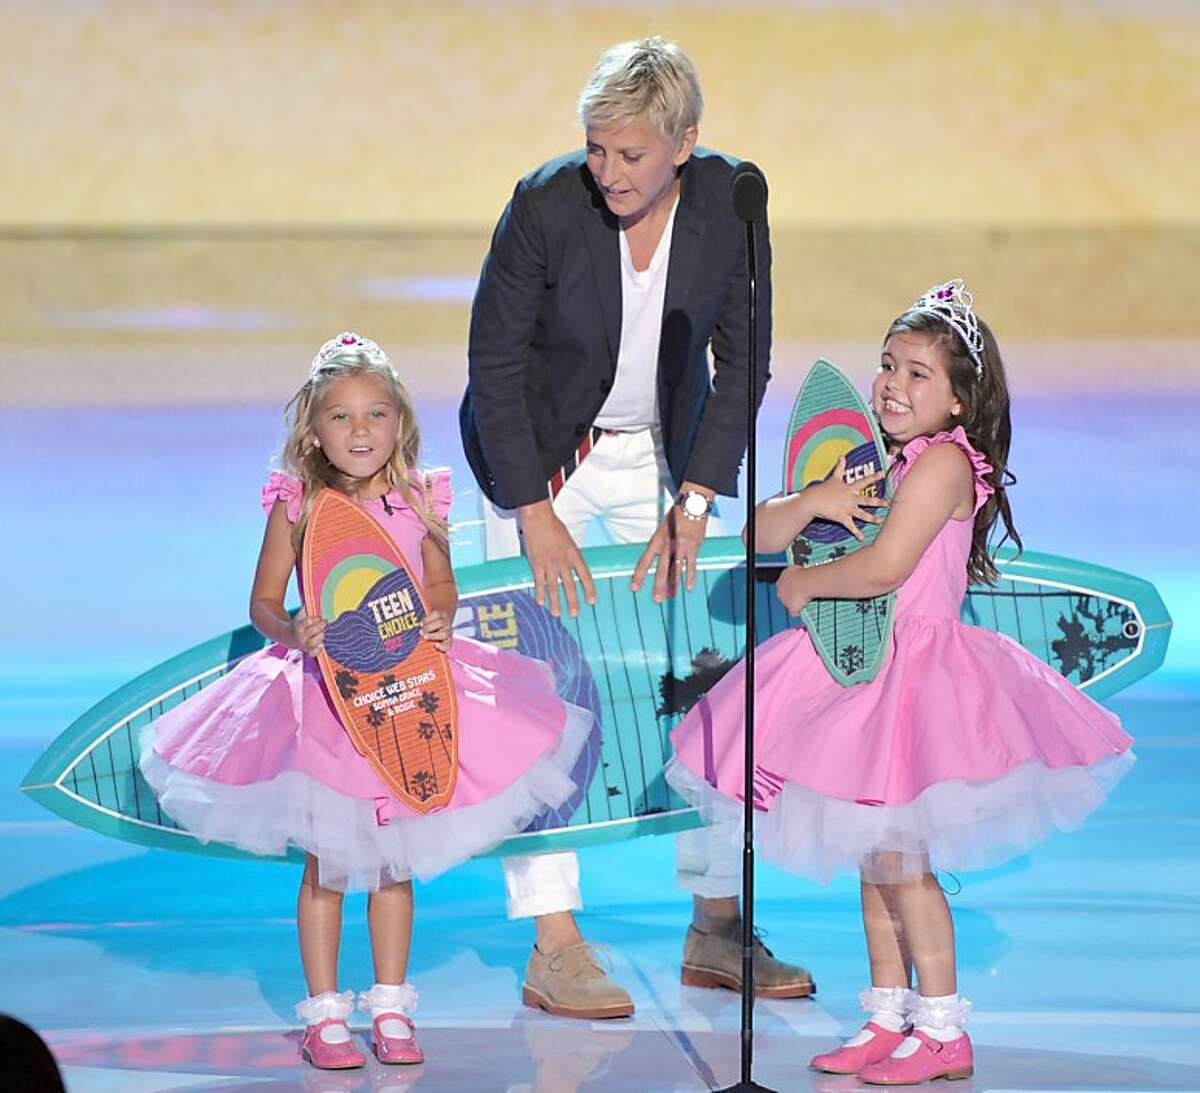 Ellen DeGeneres, center, accepts the award for choice comedian onstage with Rosie Mcclelland, left, and Sophia Grace Brownlee at the Teen Choice Awards on Sunday, July 22, 2012, in Universal City, Calif. (Photo by John Shearer/Invision/AP)